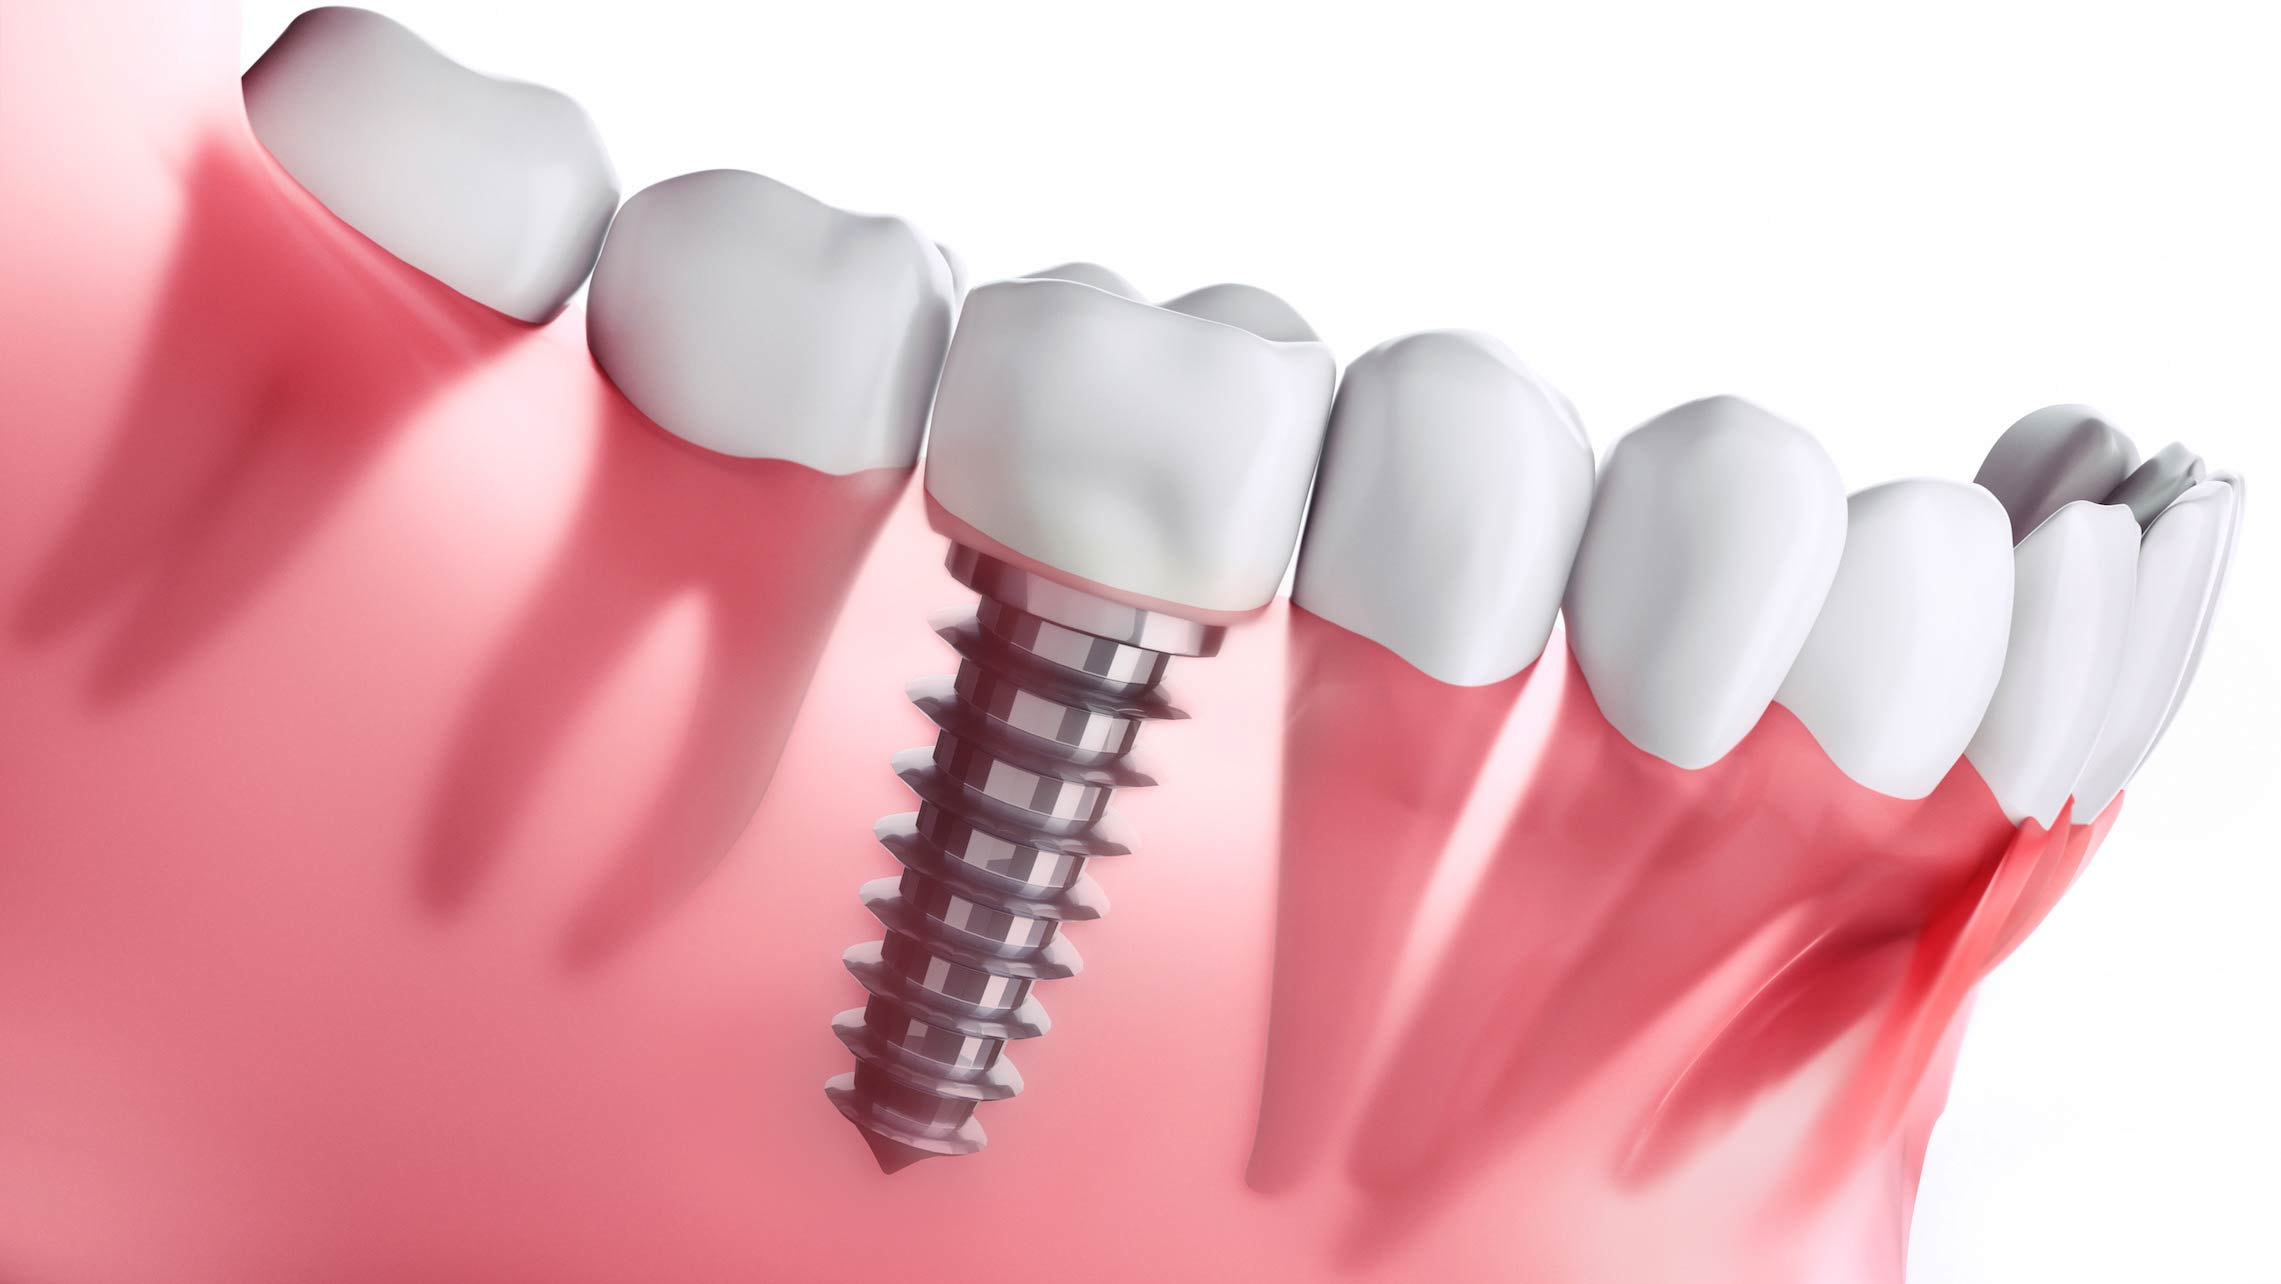 What Are Top Advantages of Dental Implants?